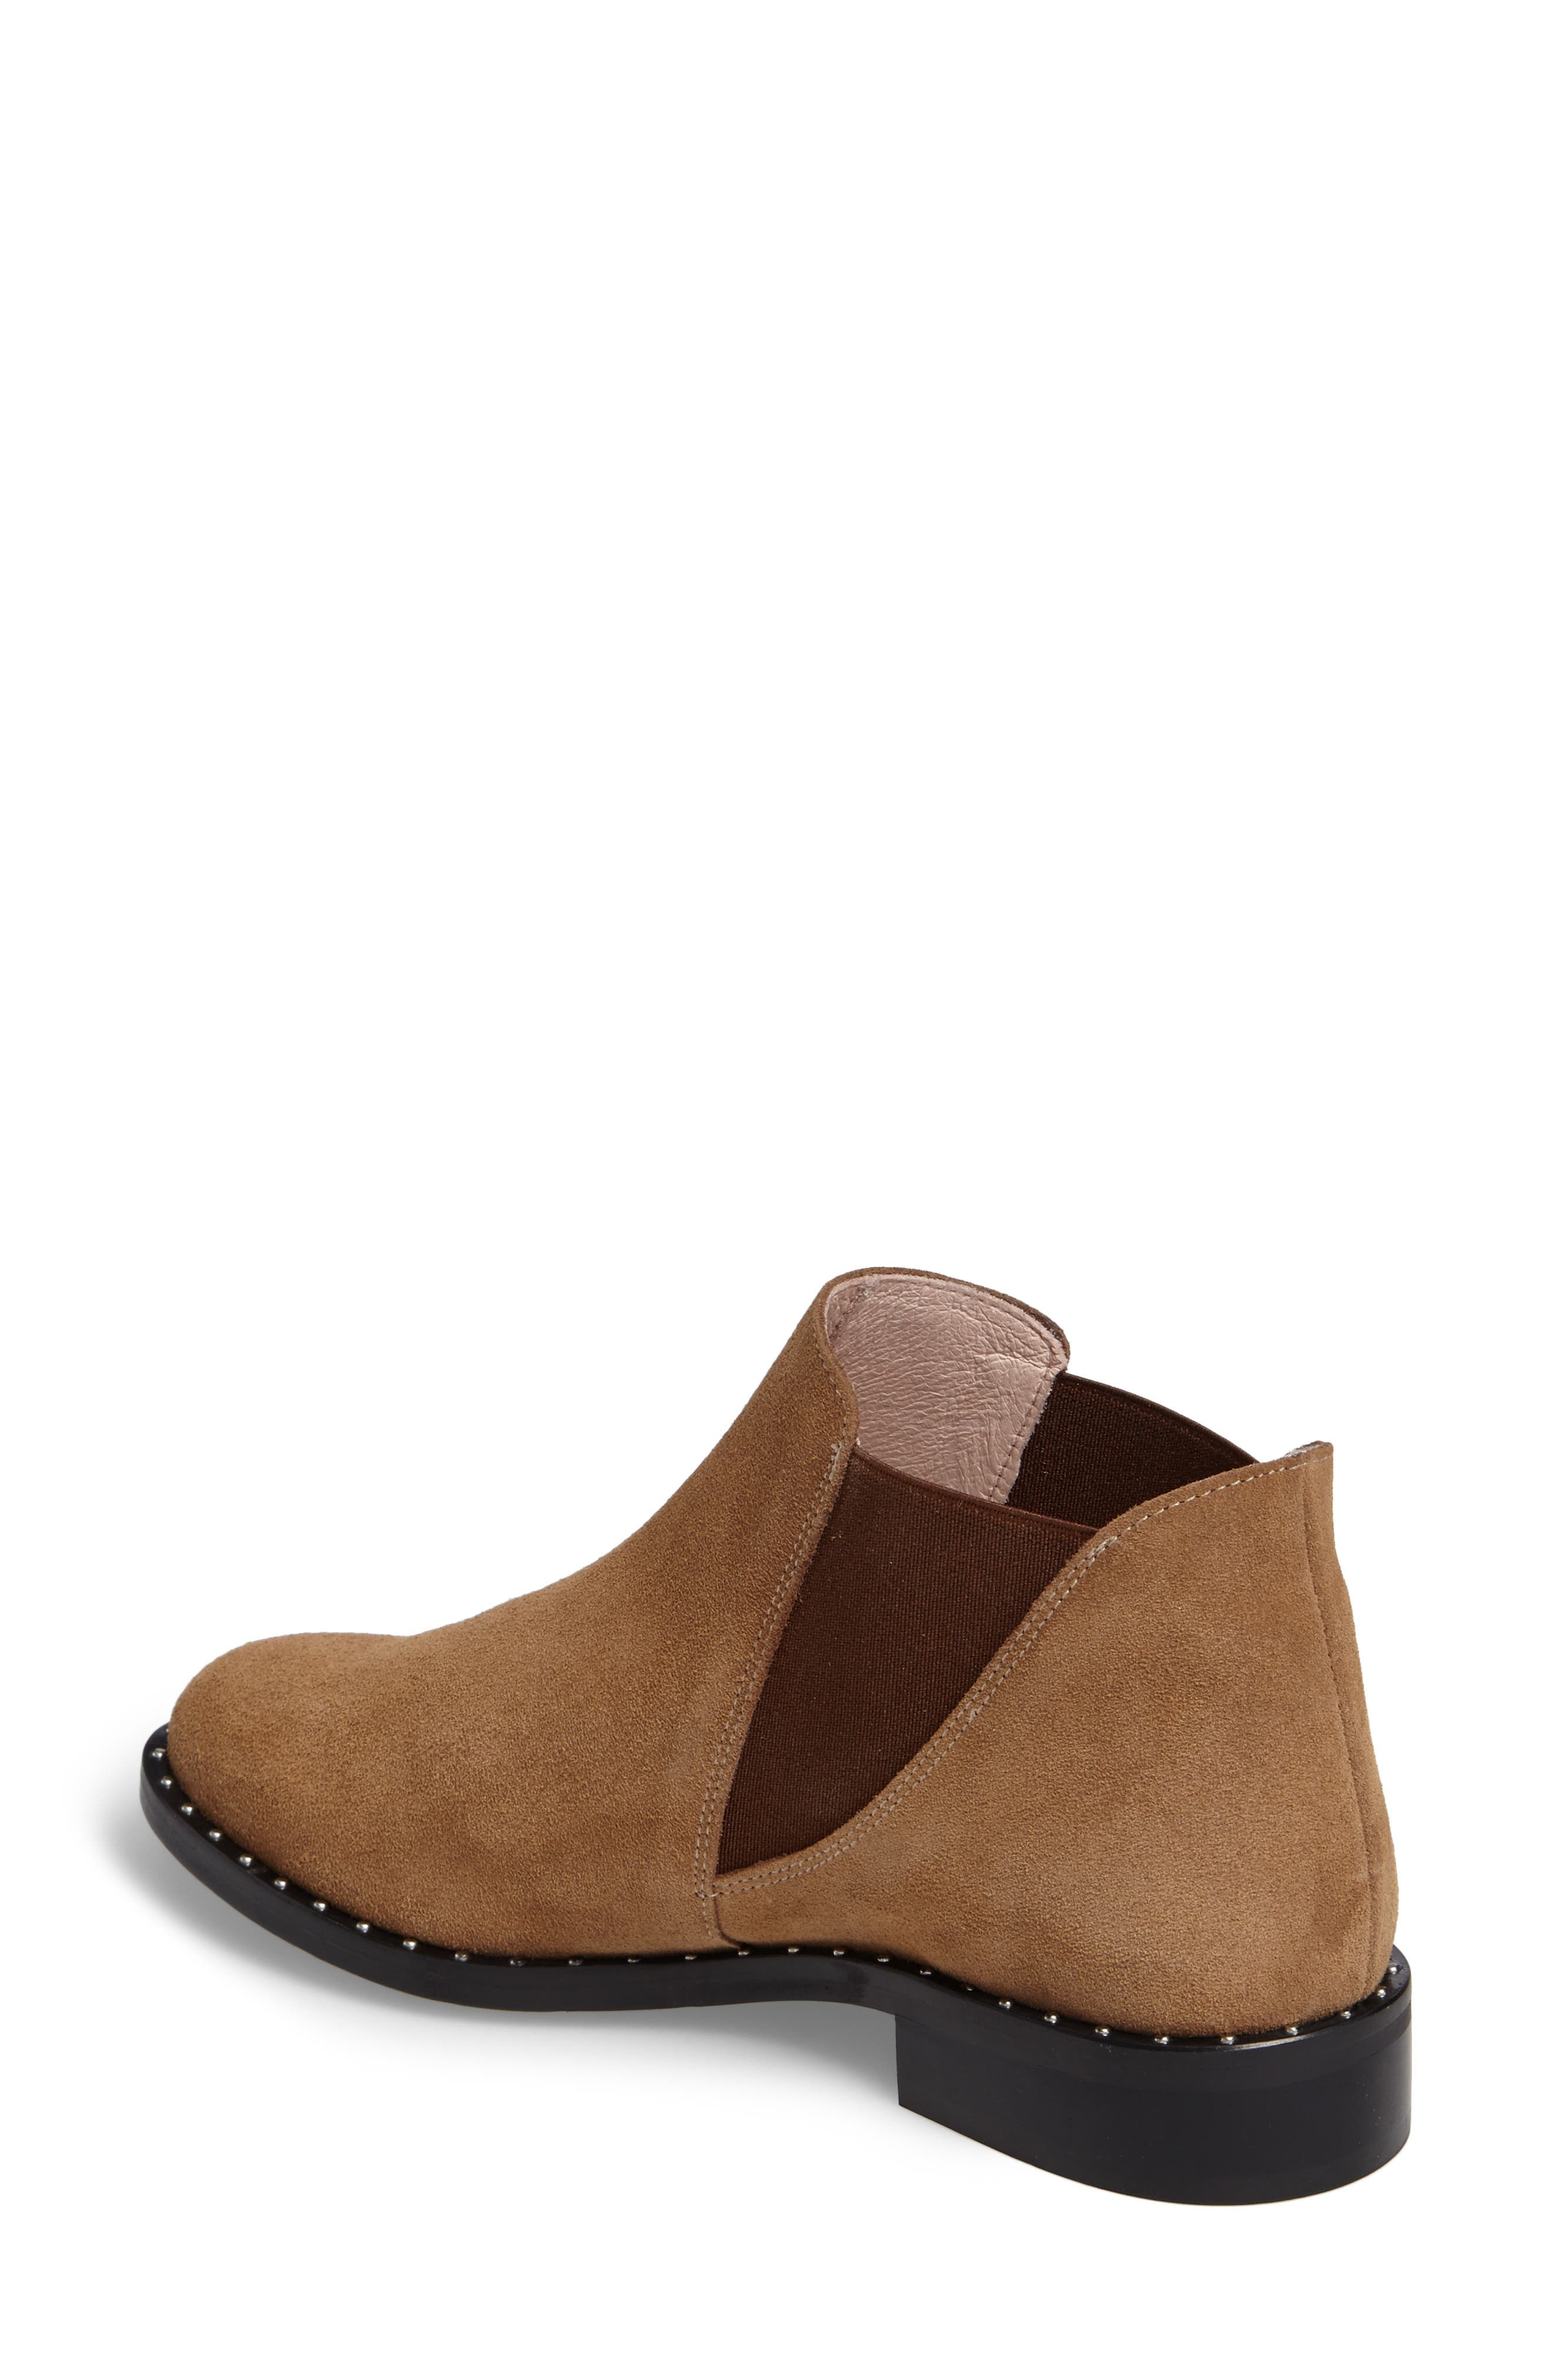 Alternate Image 2  - patricia green Palma Chelsea Boot (Women)